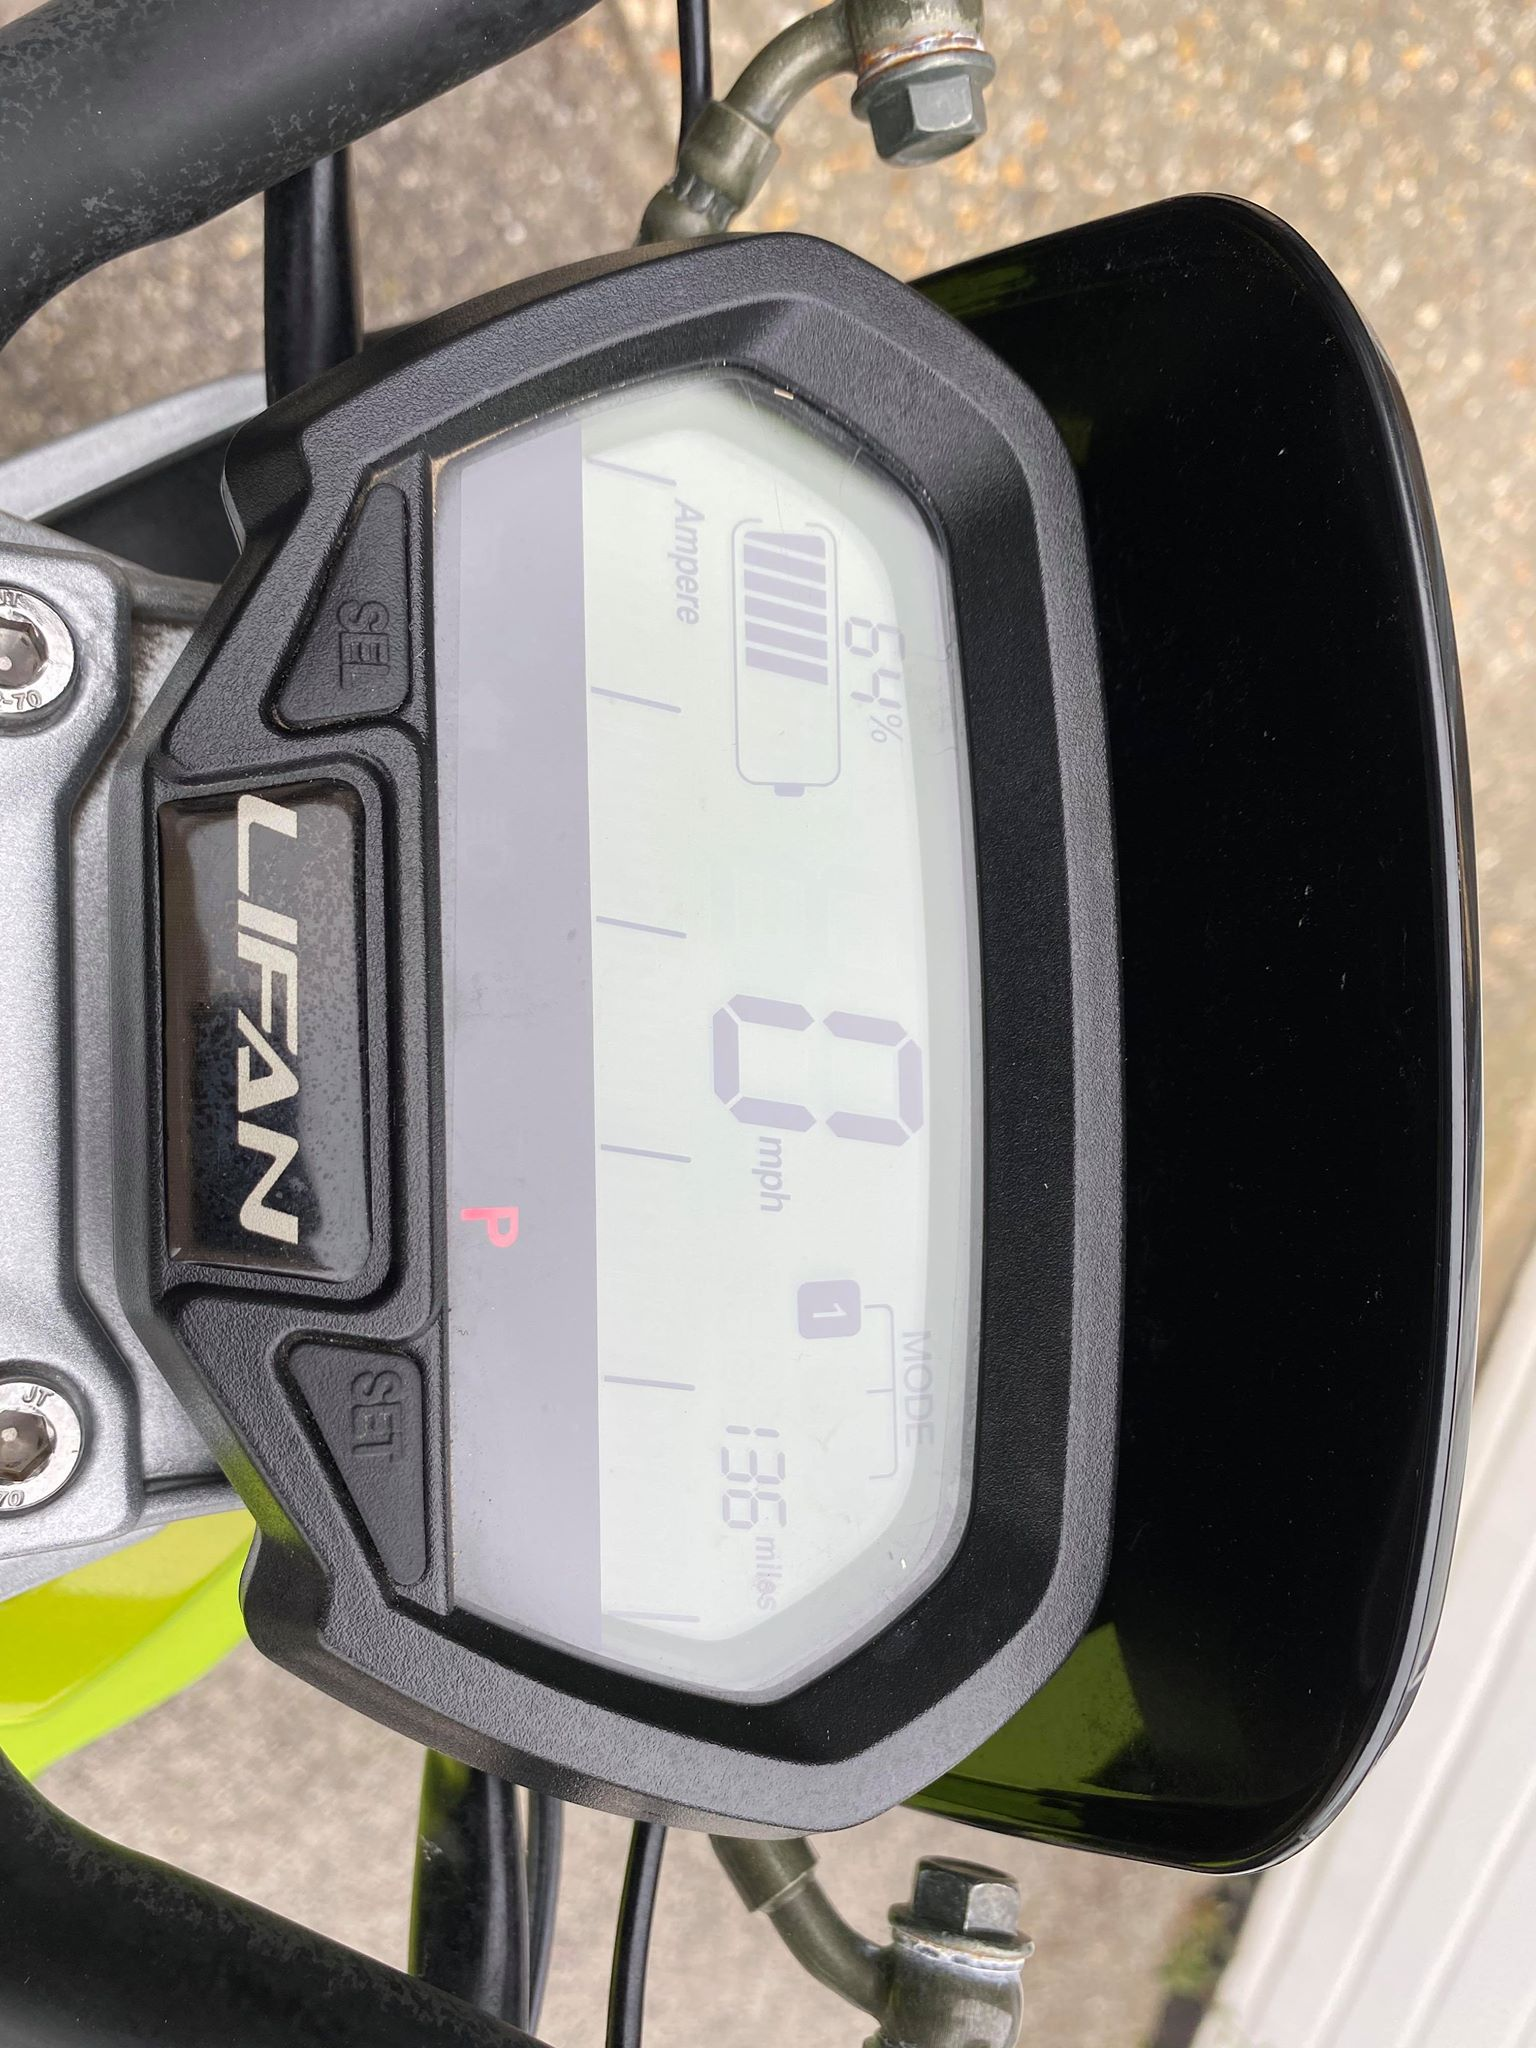 Lifan LF1200DT Electric Moped